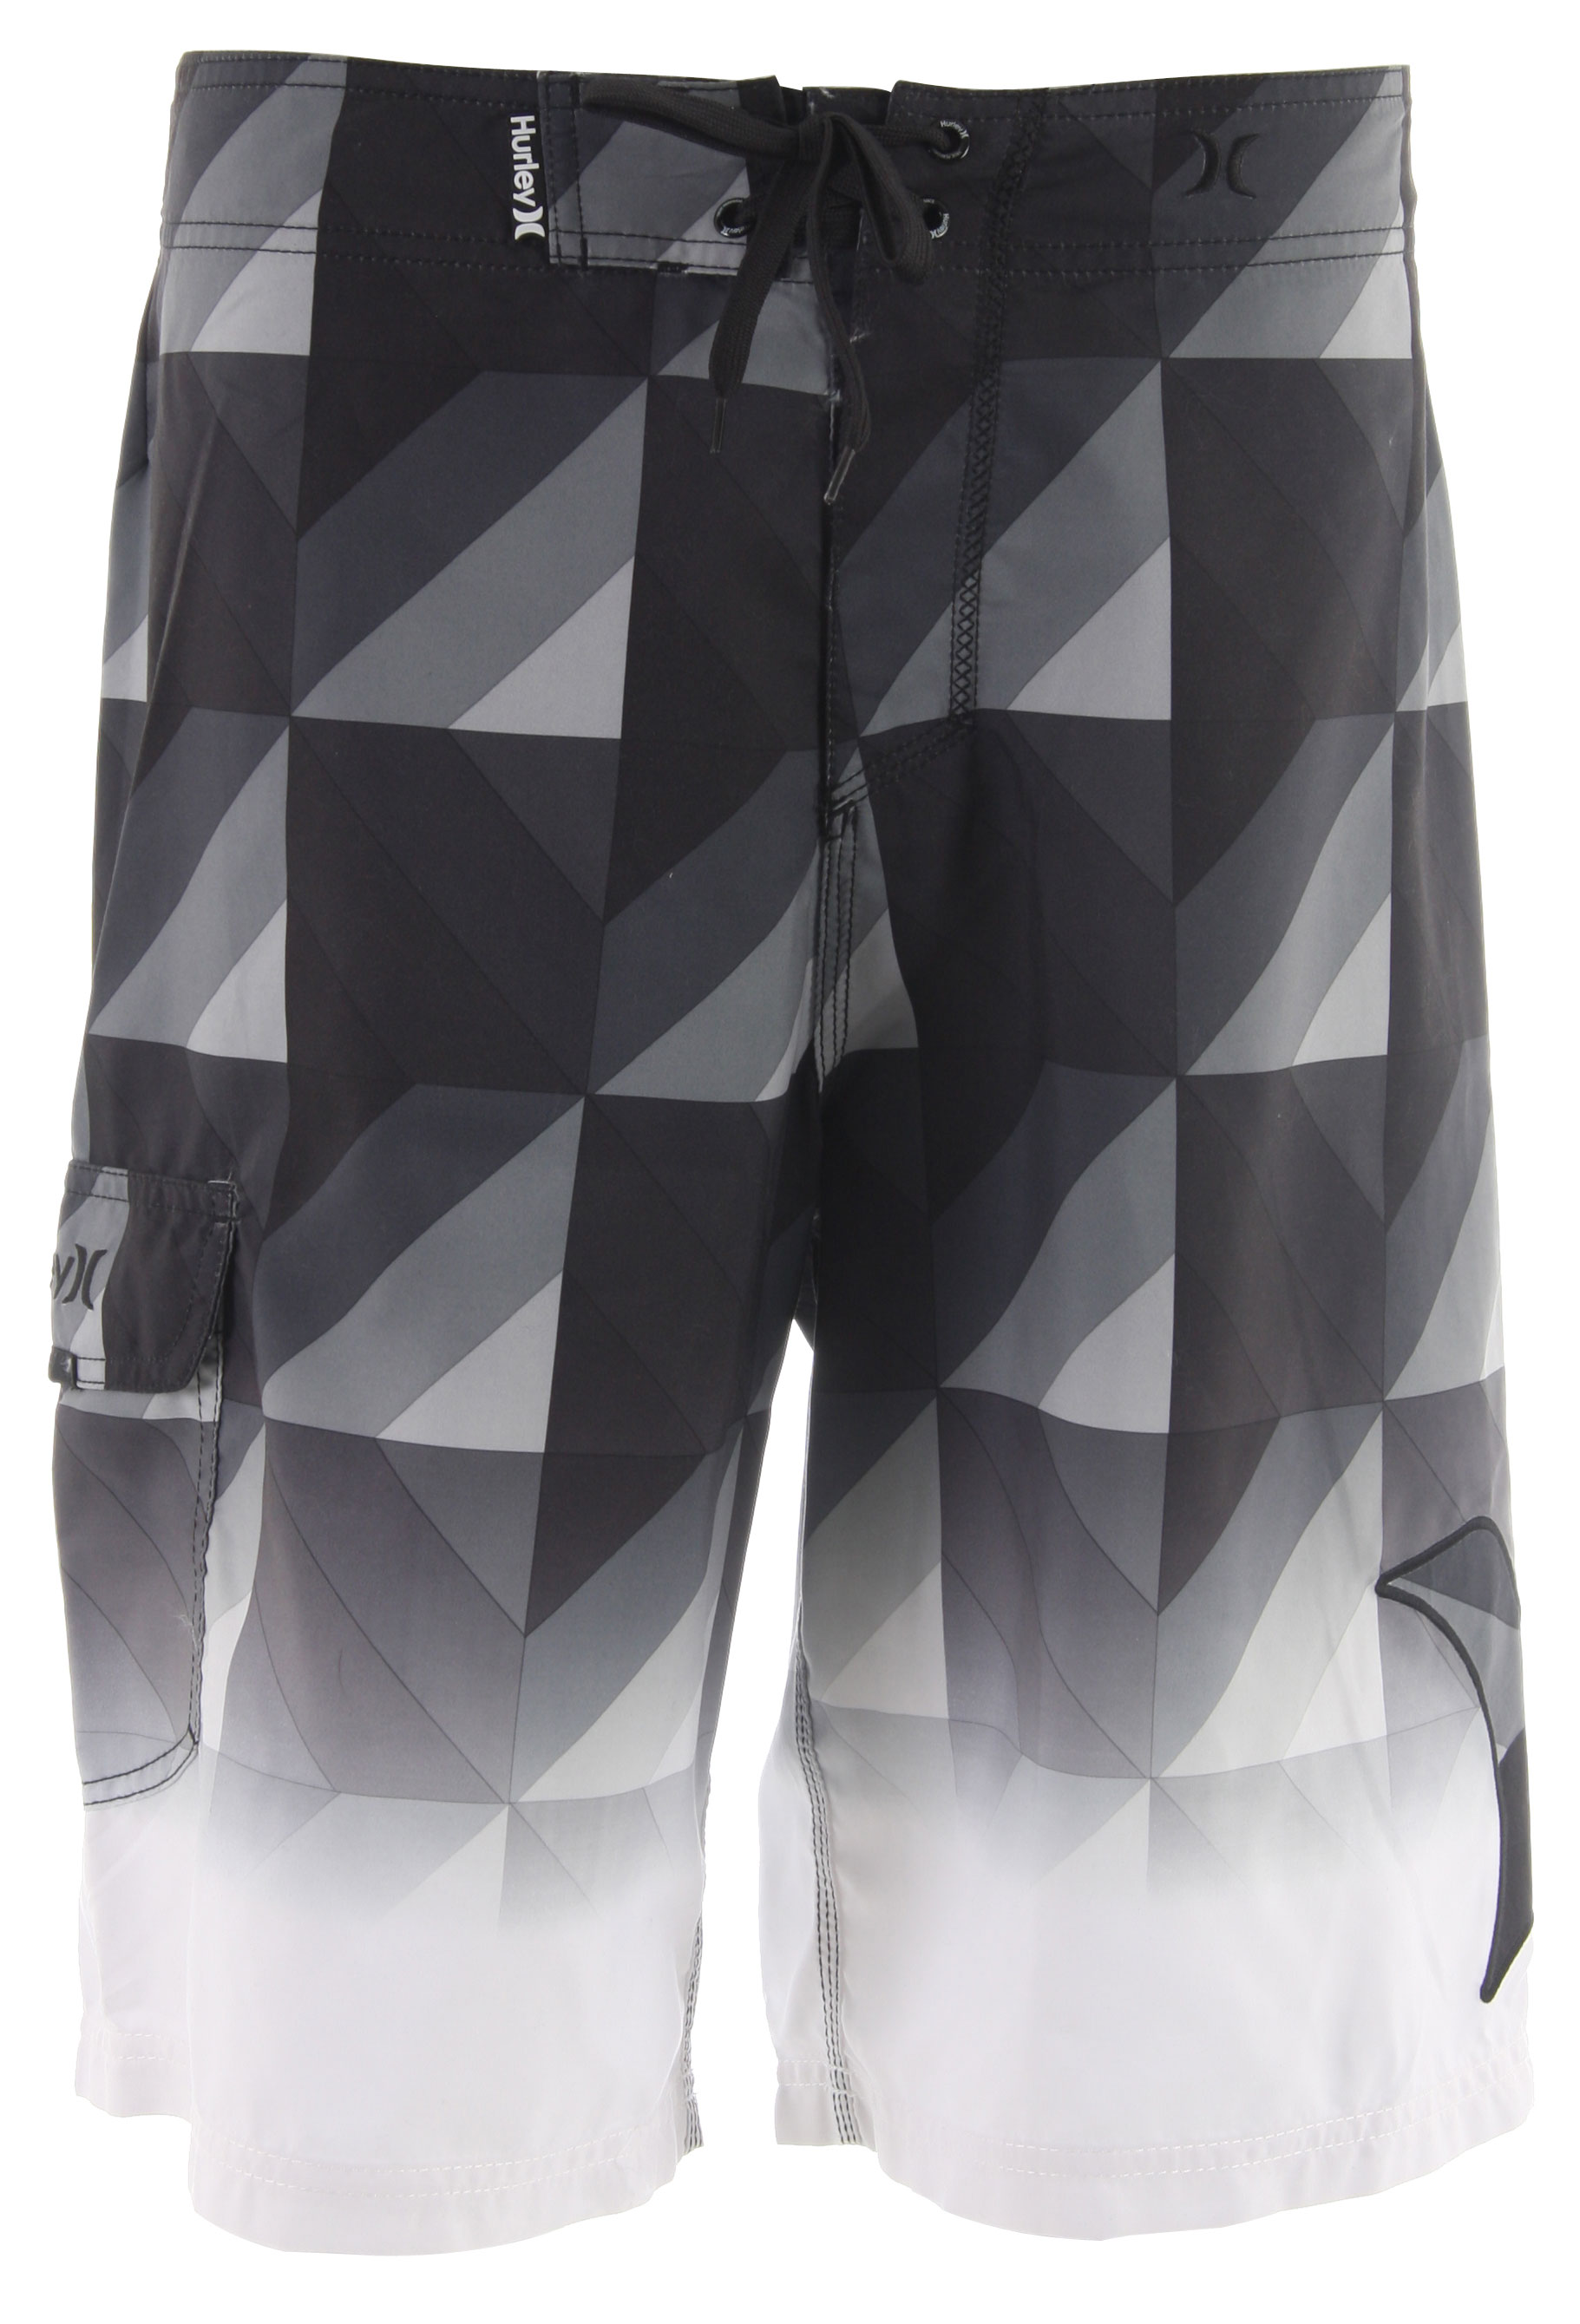 Surf Key Features of the Hurley Dissolve Boardshorts Black: 22 inch outseam Recycled supersuede Patented EZ fly closure embroidered logo icon pocket drainhole - $48.95